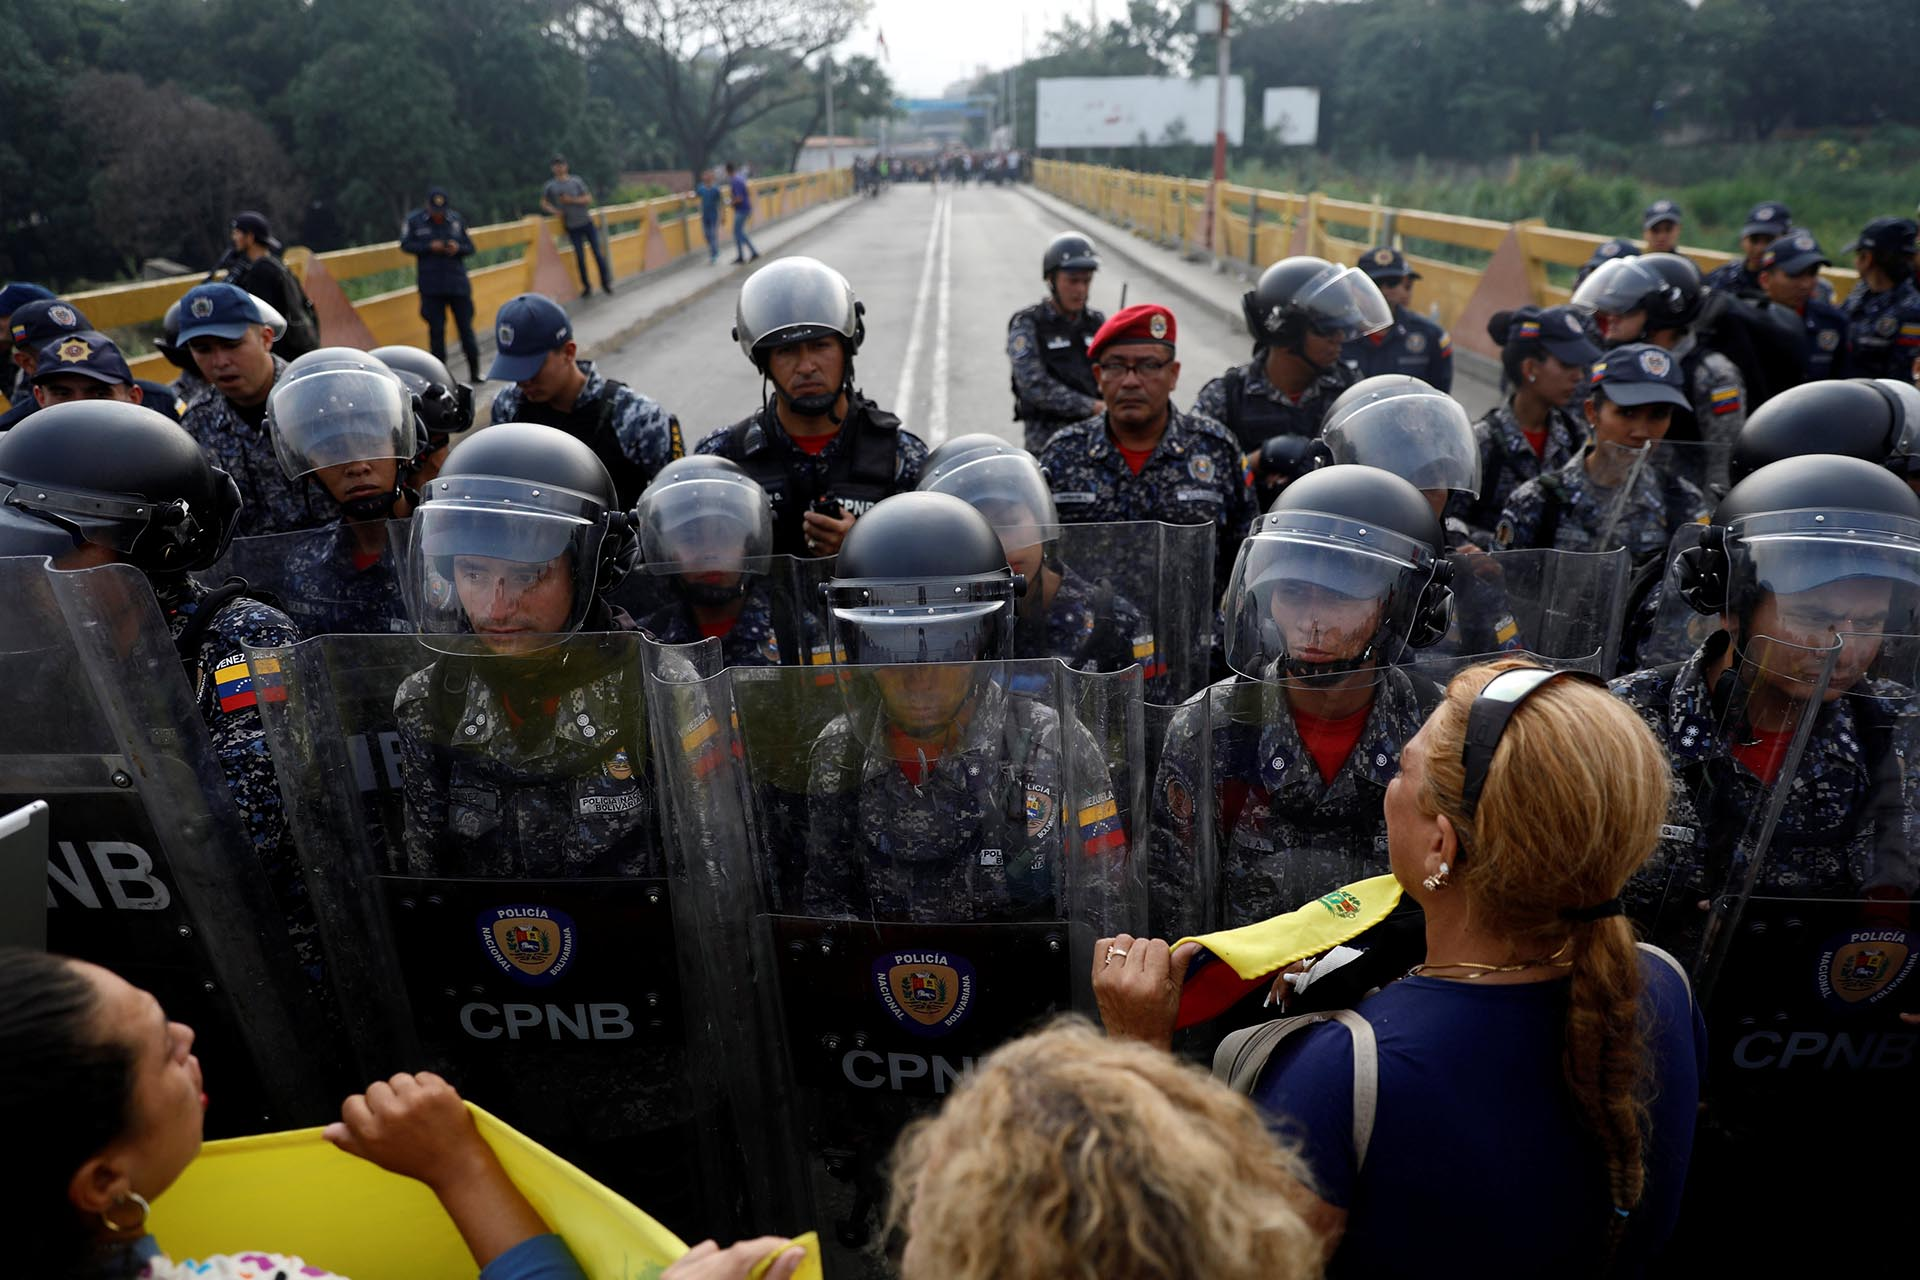 Venezuela's opposition supporters demand to cross the border line between Colombia and Venezuela at Simon Bolivar bridge as Venezuela's security forces stand in the border line blocking their way in the outskirts of Cucuta, Colombia